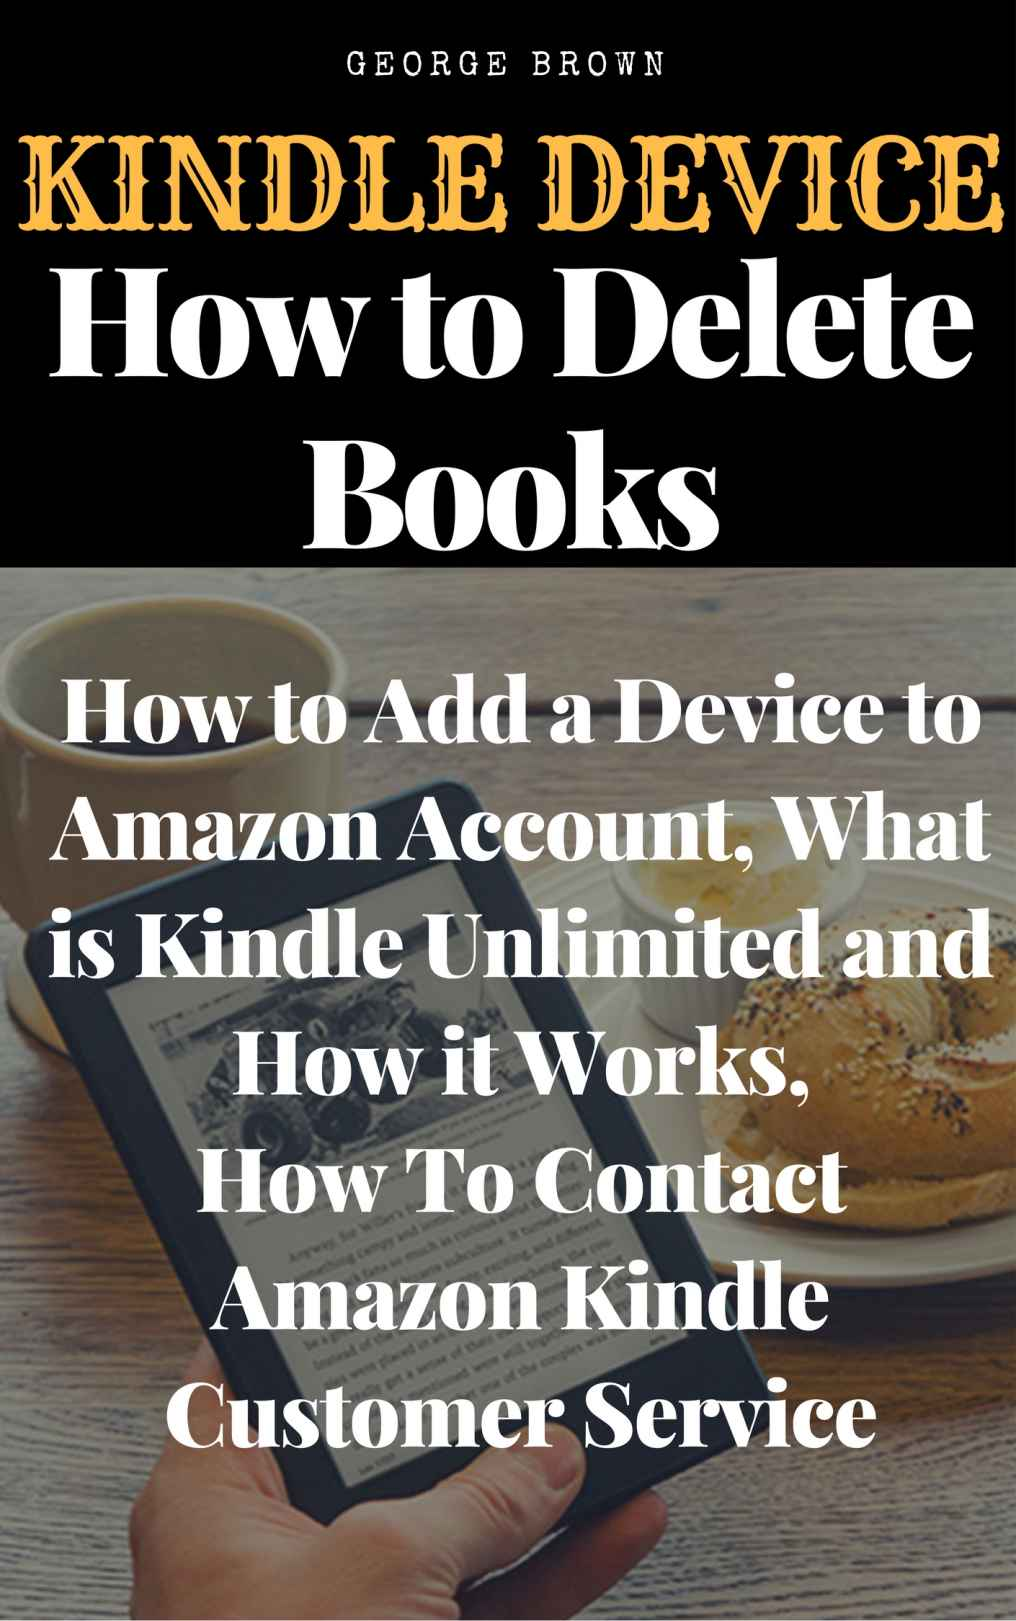 Kindle Device: How to Delete Books, How to Add a Device to